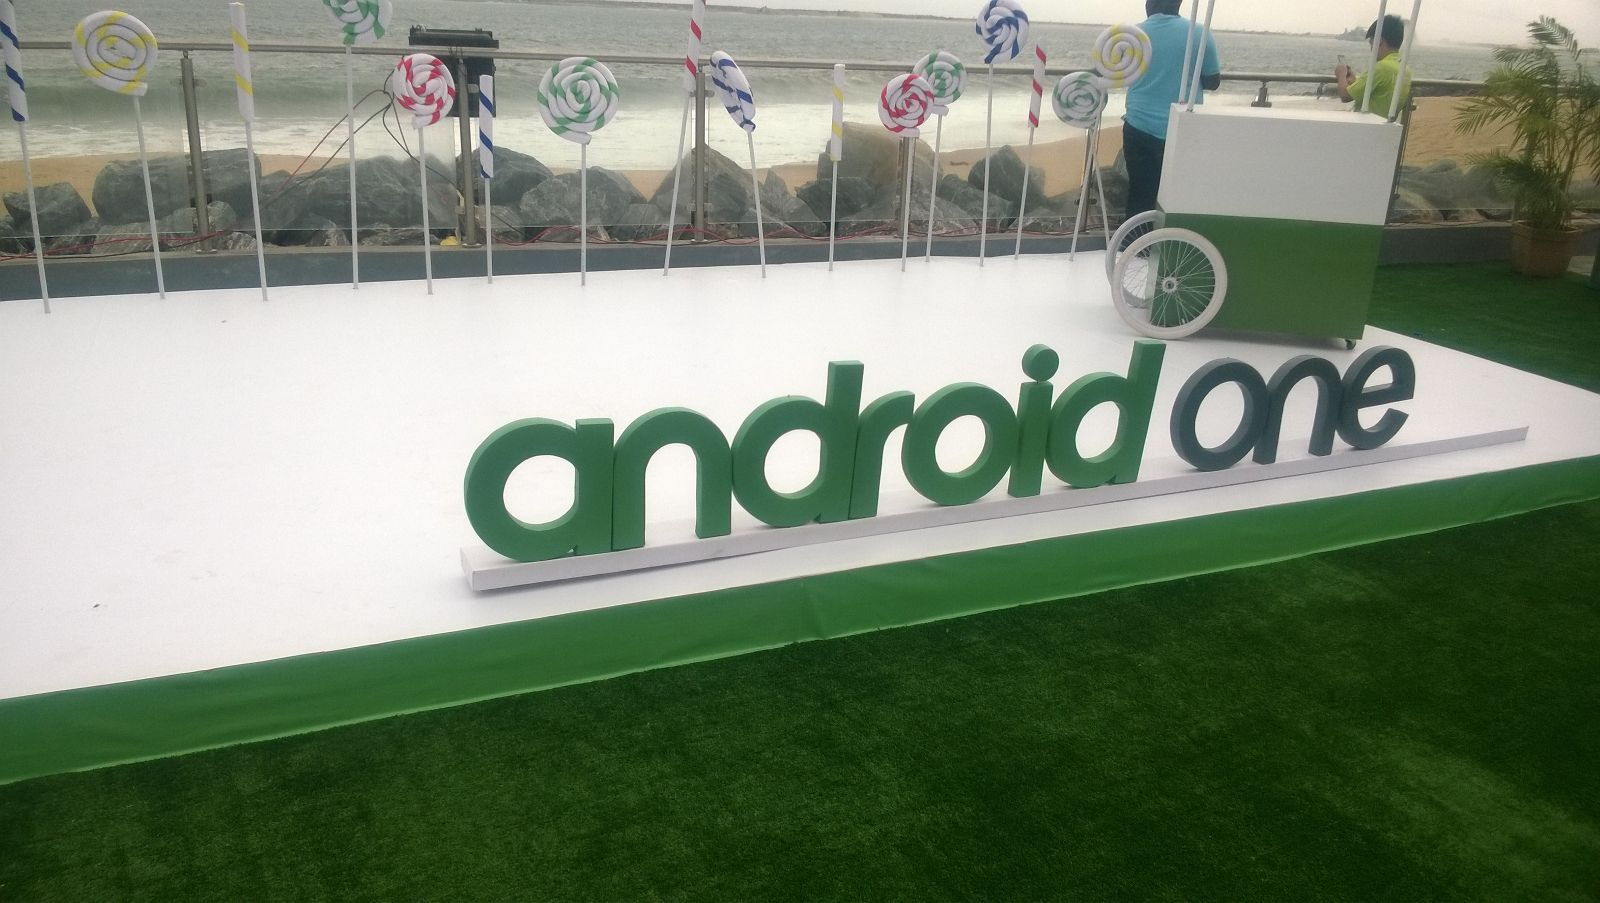 Android one event in Nigeria